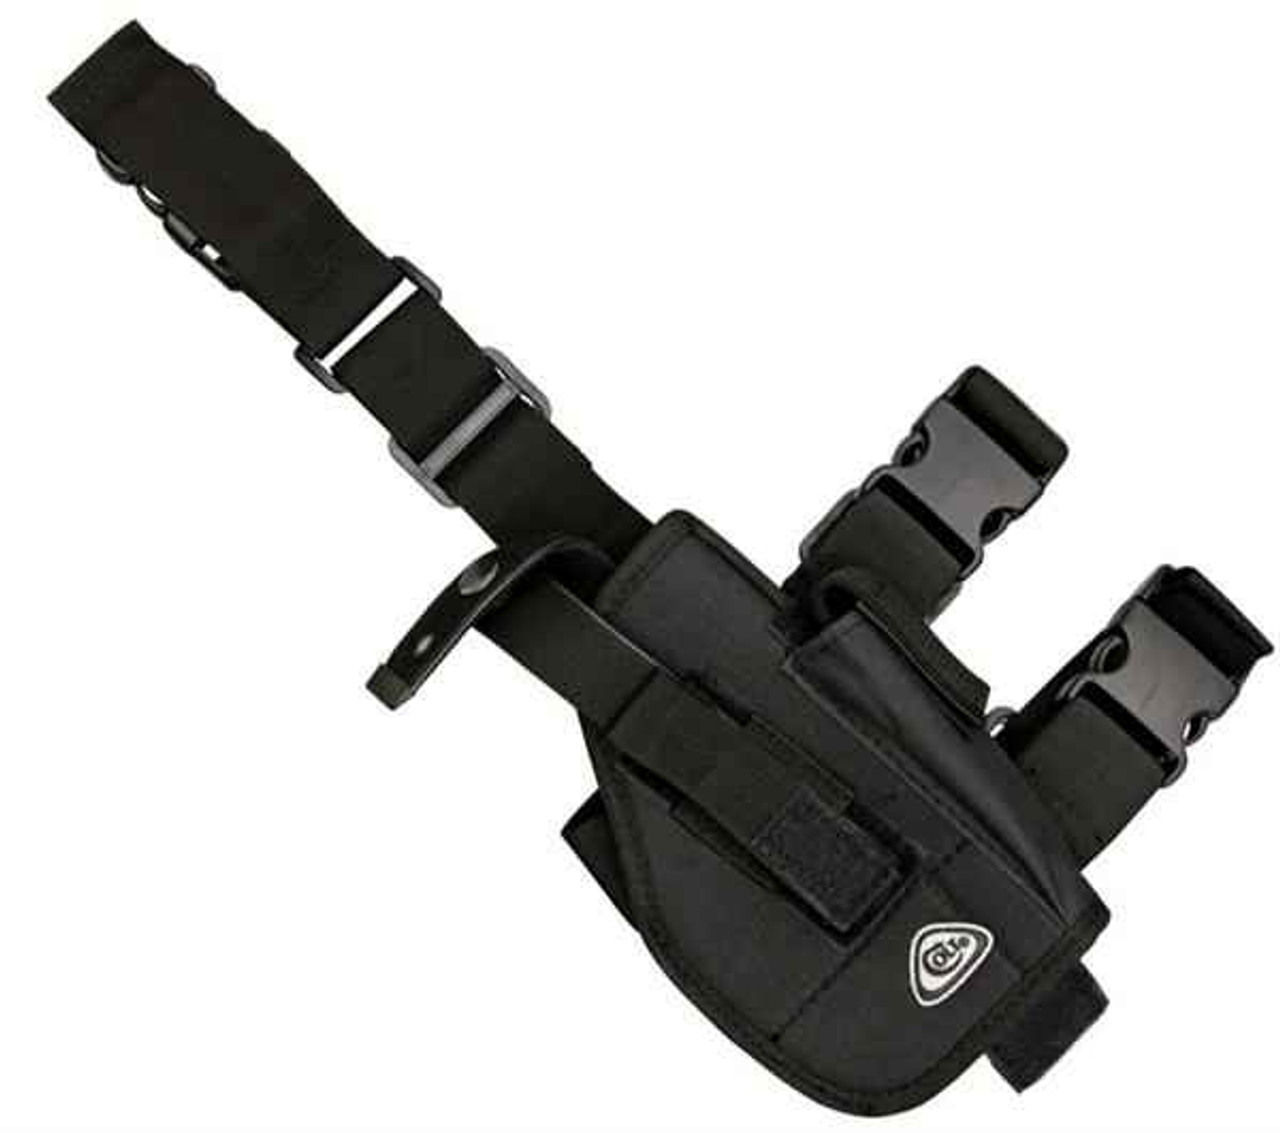 Colt Tactical Gear Drop Leg Holster